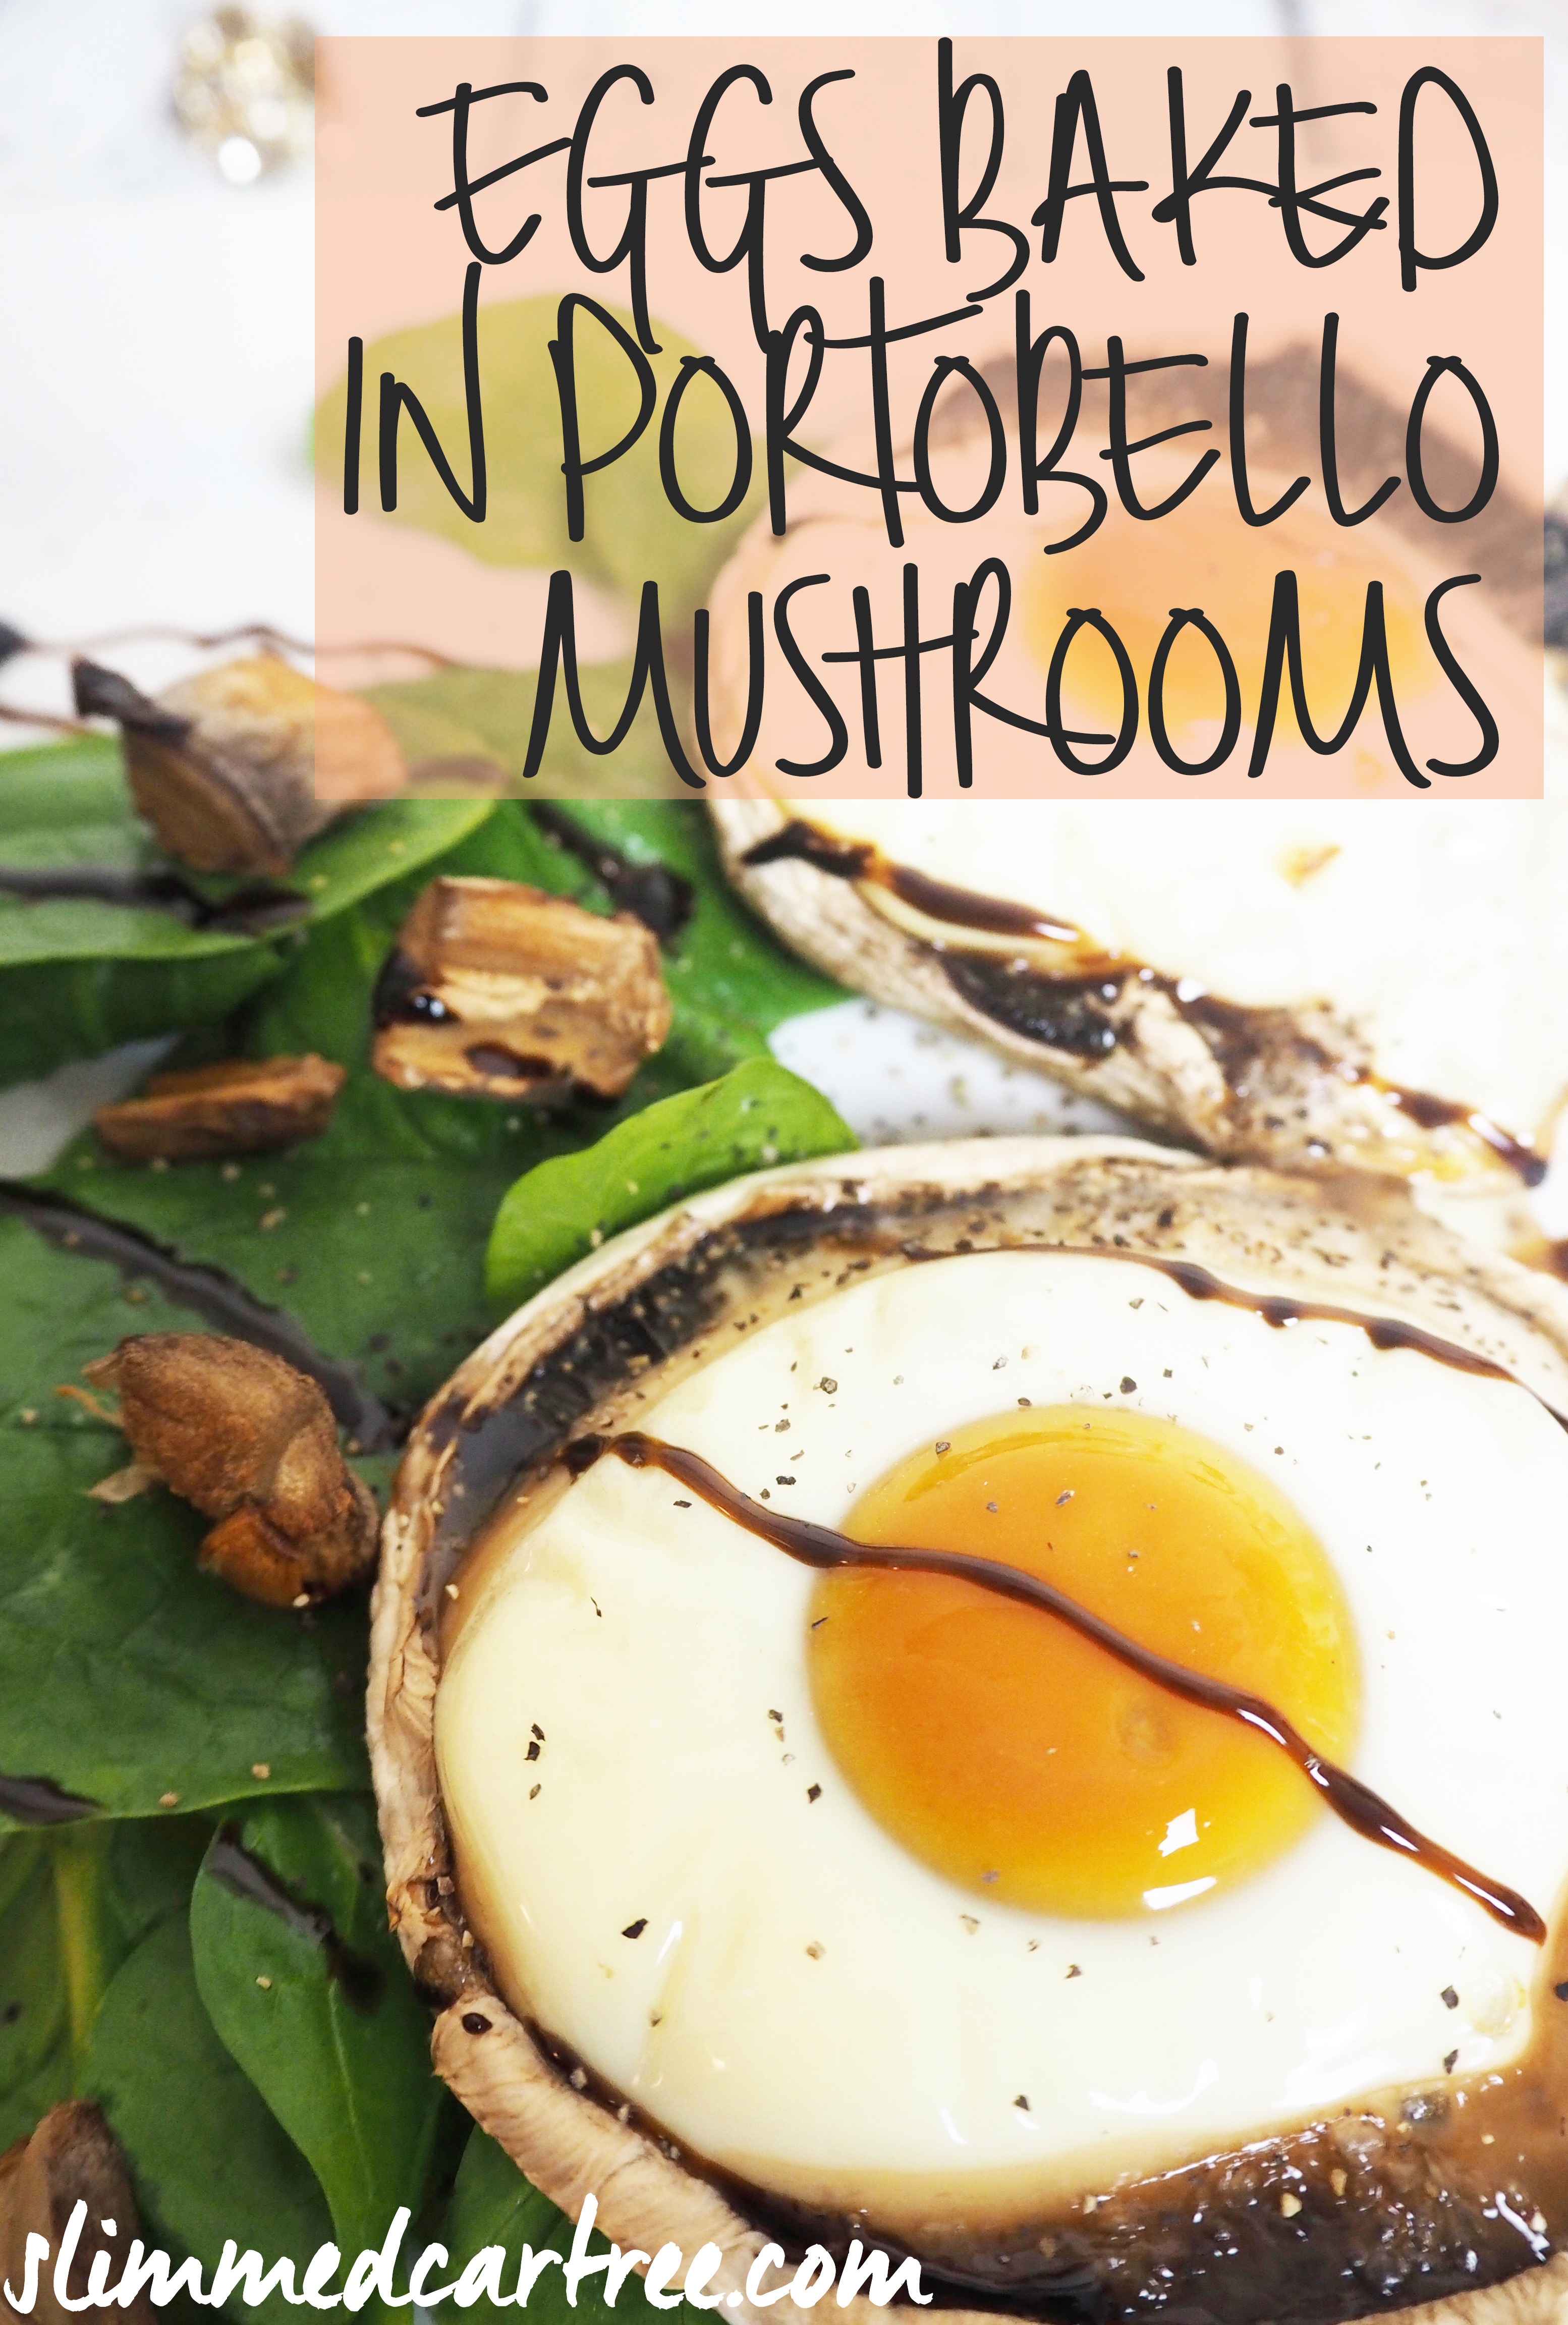 egg baked in portobello mushrooms - easy breakfast recipe only takes 30 minutes to cook!